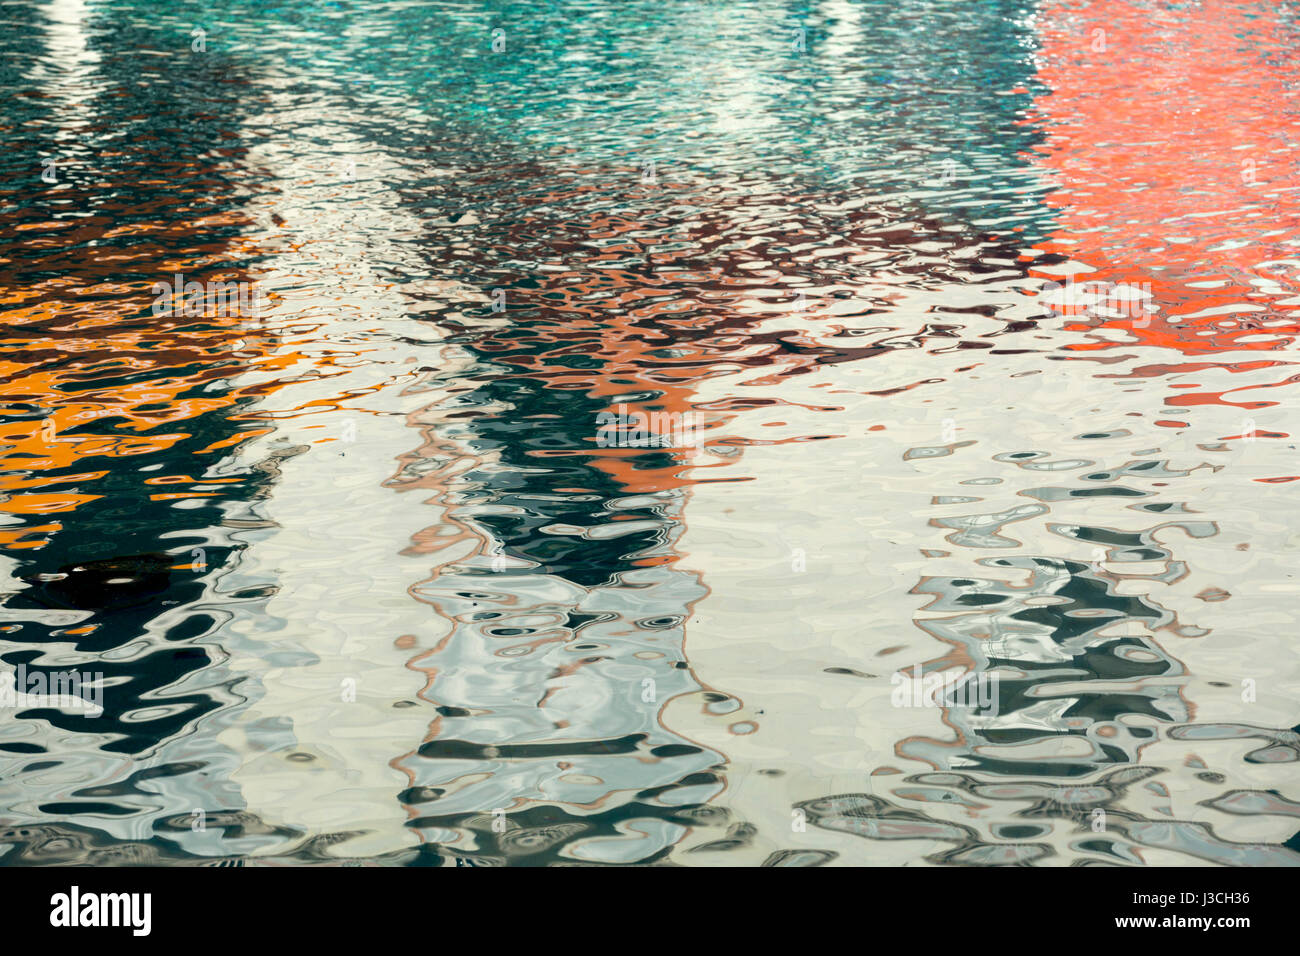 Abstract reflection pattern on a clear water surface - Stock Image